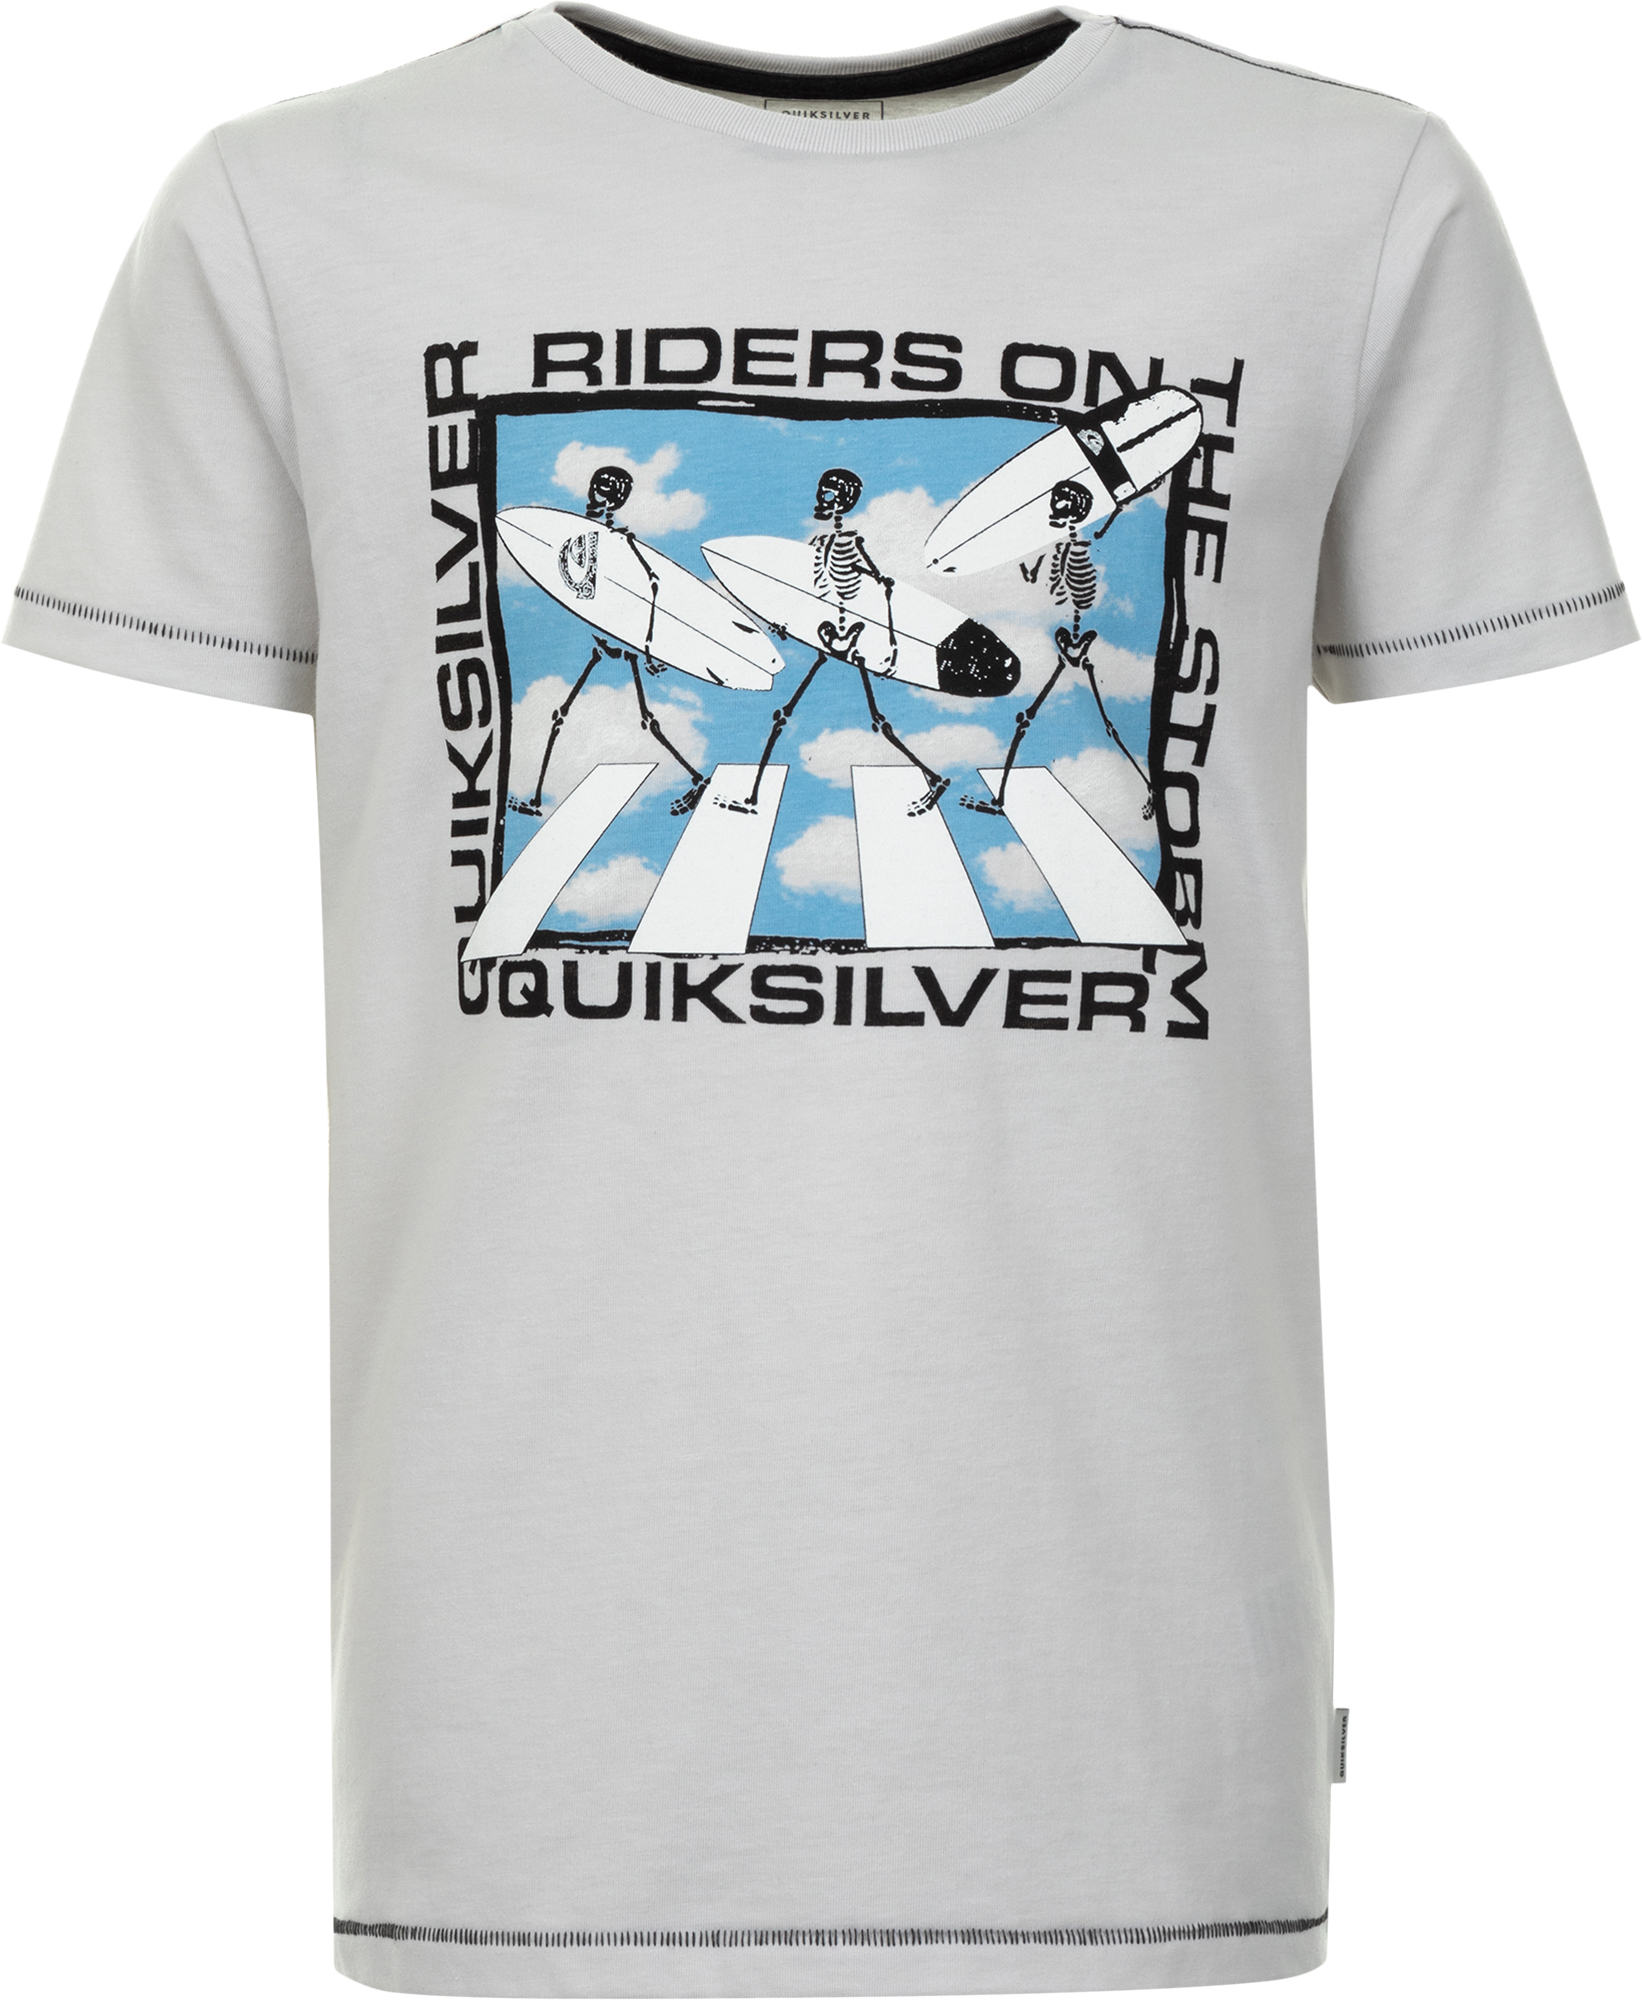 Quiksilver Футболка для мальчиков Quiksilver Stormy Rider Ss Youth, размер 164-170 quiksilver штаны прямые детские quiksilver thick wood baby i pant blue salted